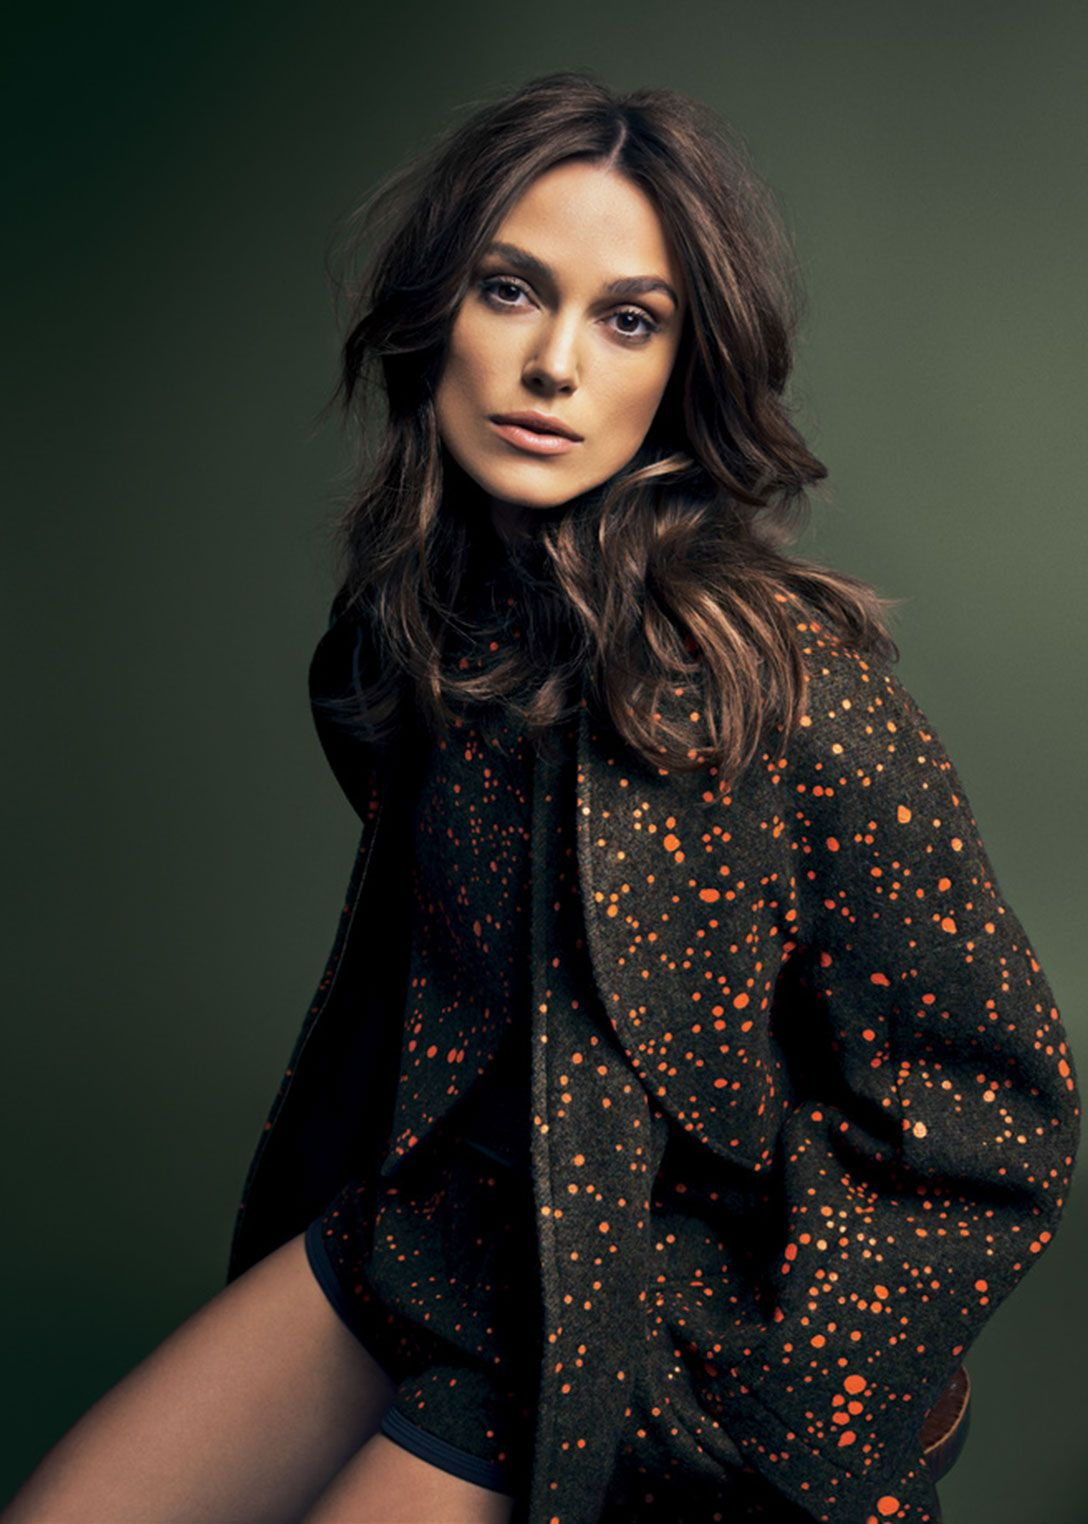 Keira Knightley, photographed by Karen Collins for Glamour ... Keira Knightley